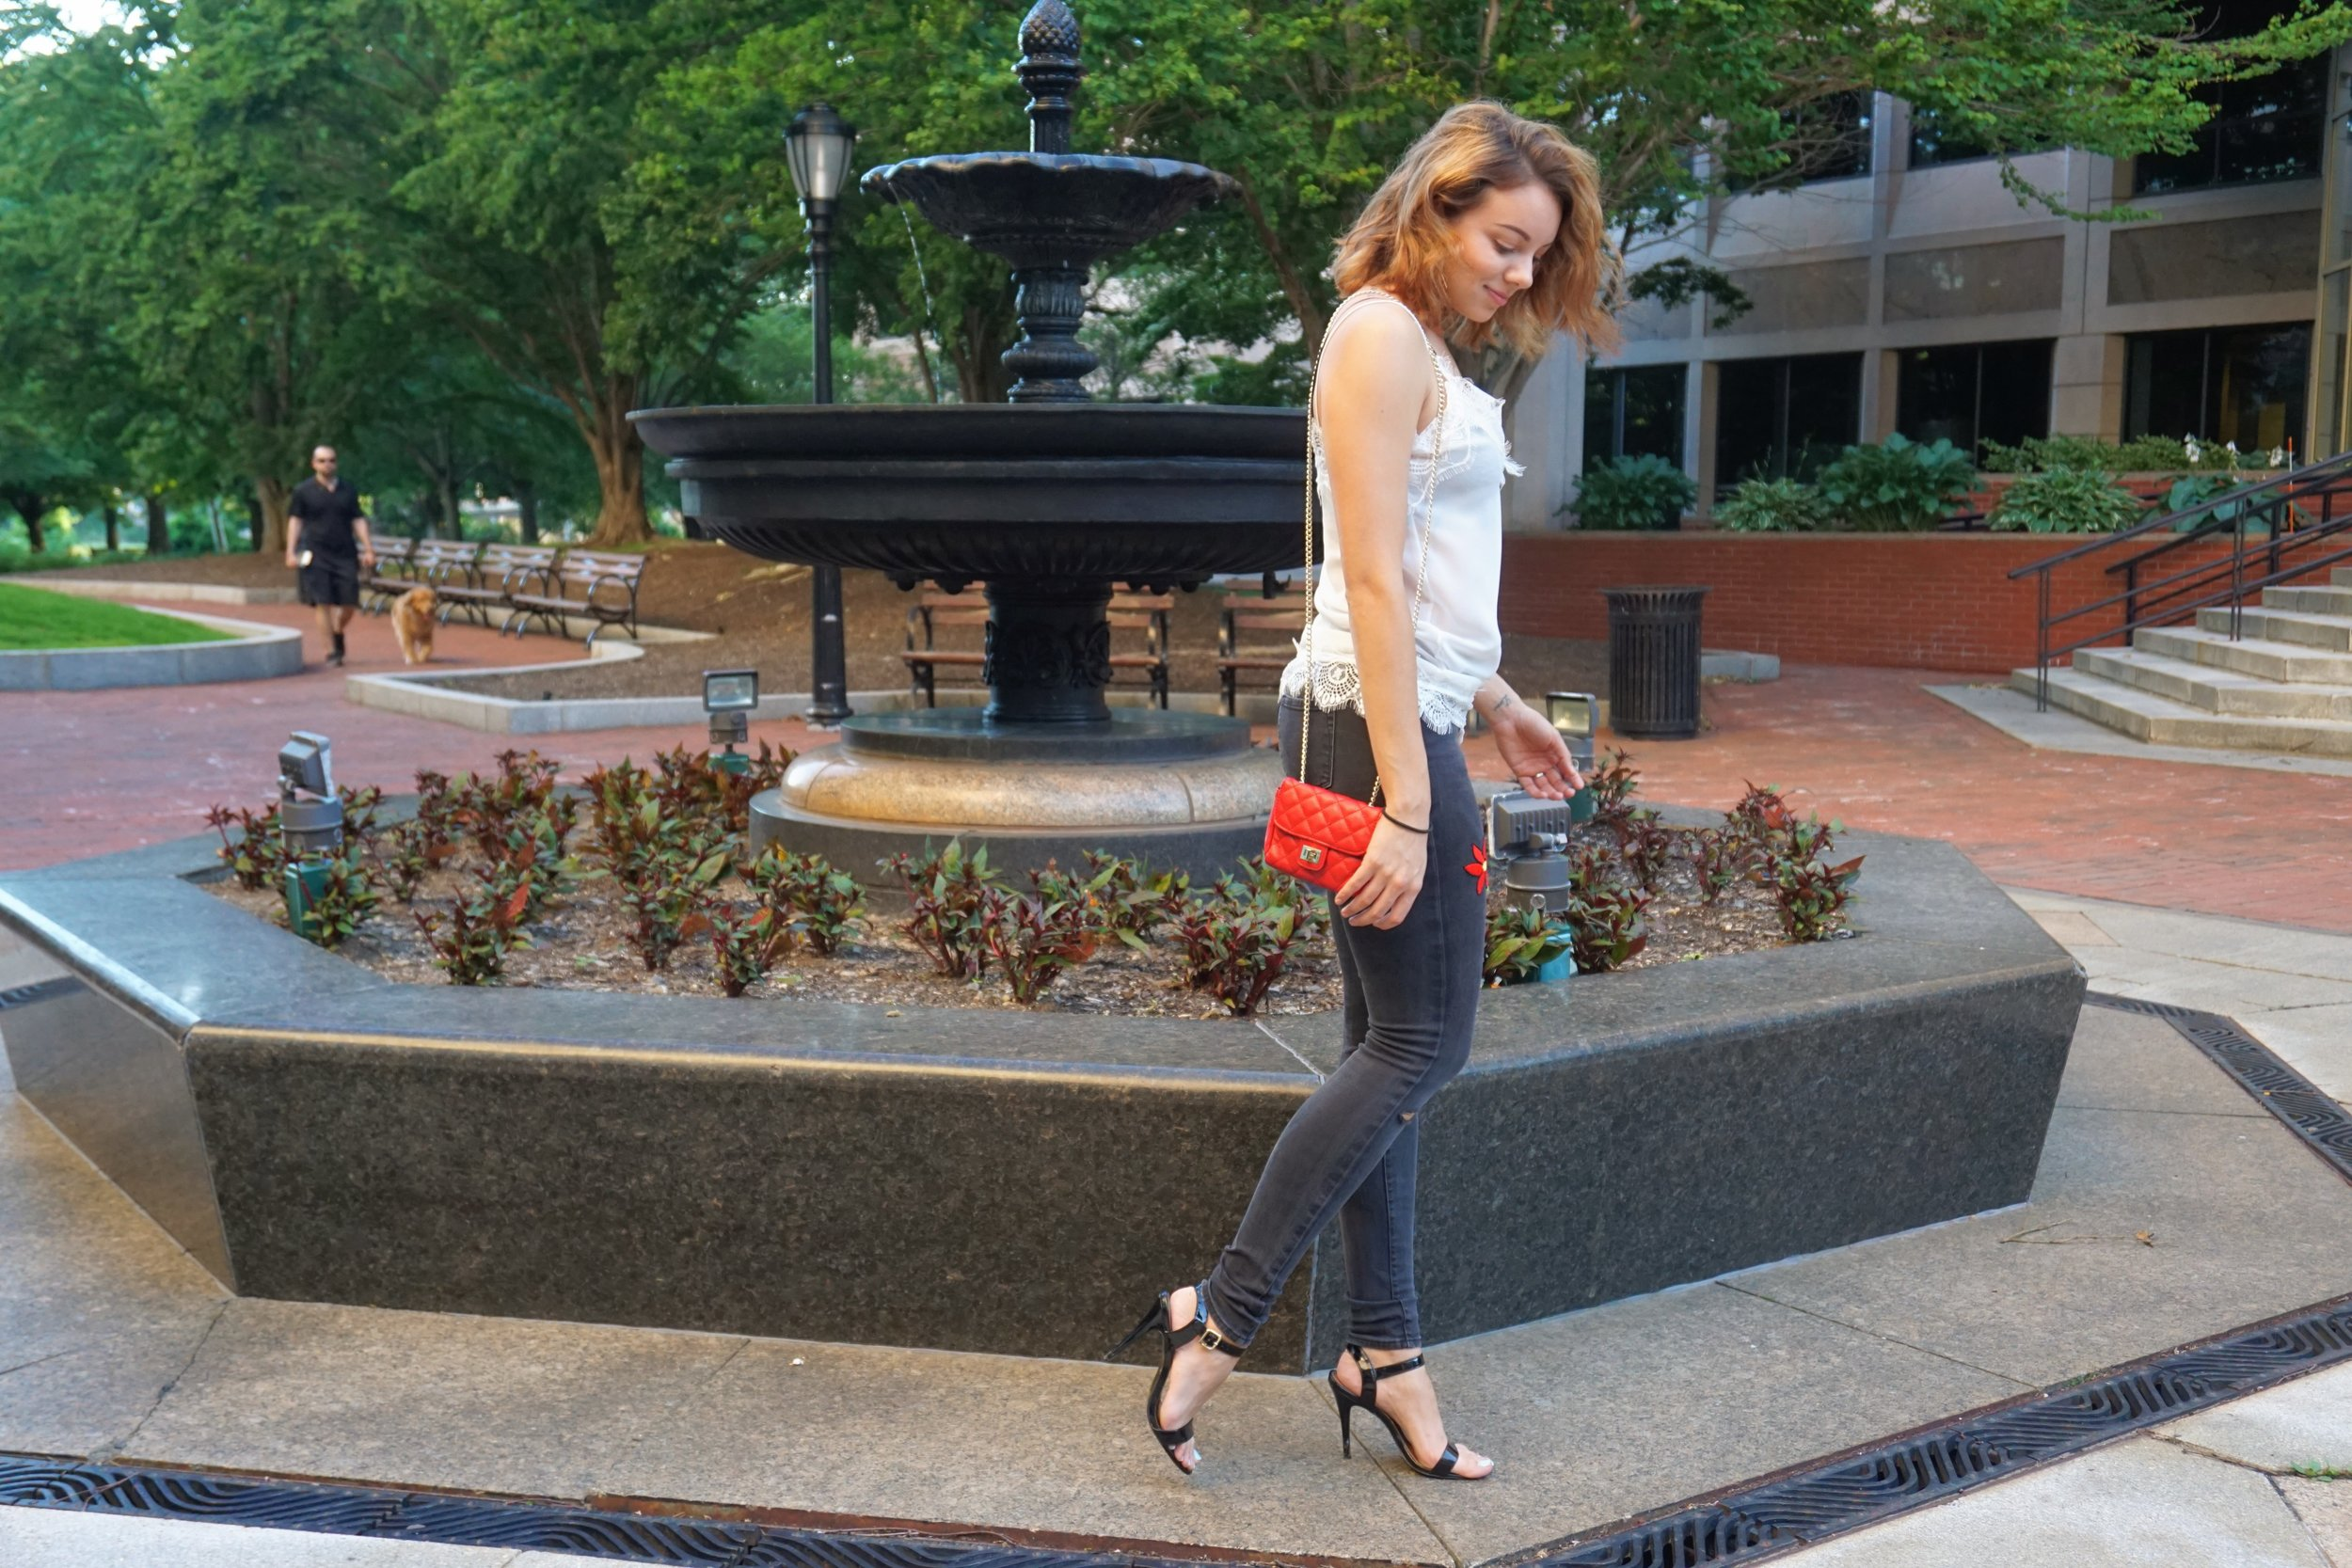 Summer look: white lace top, black ripped jeans, black choker, black sandal heels, and red little bag.